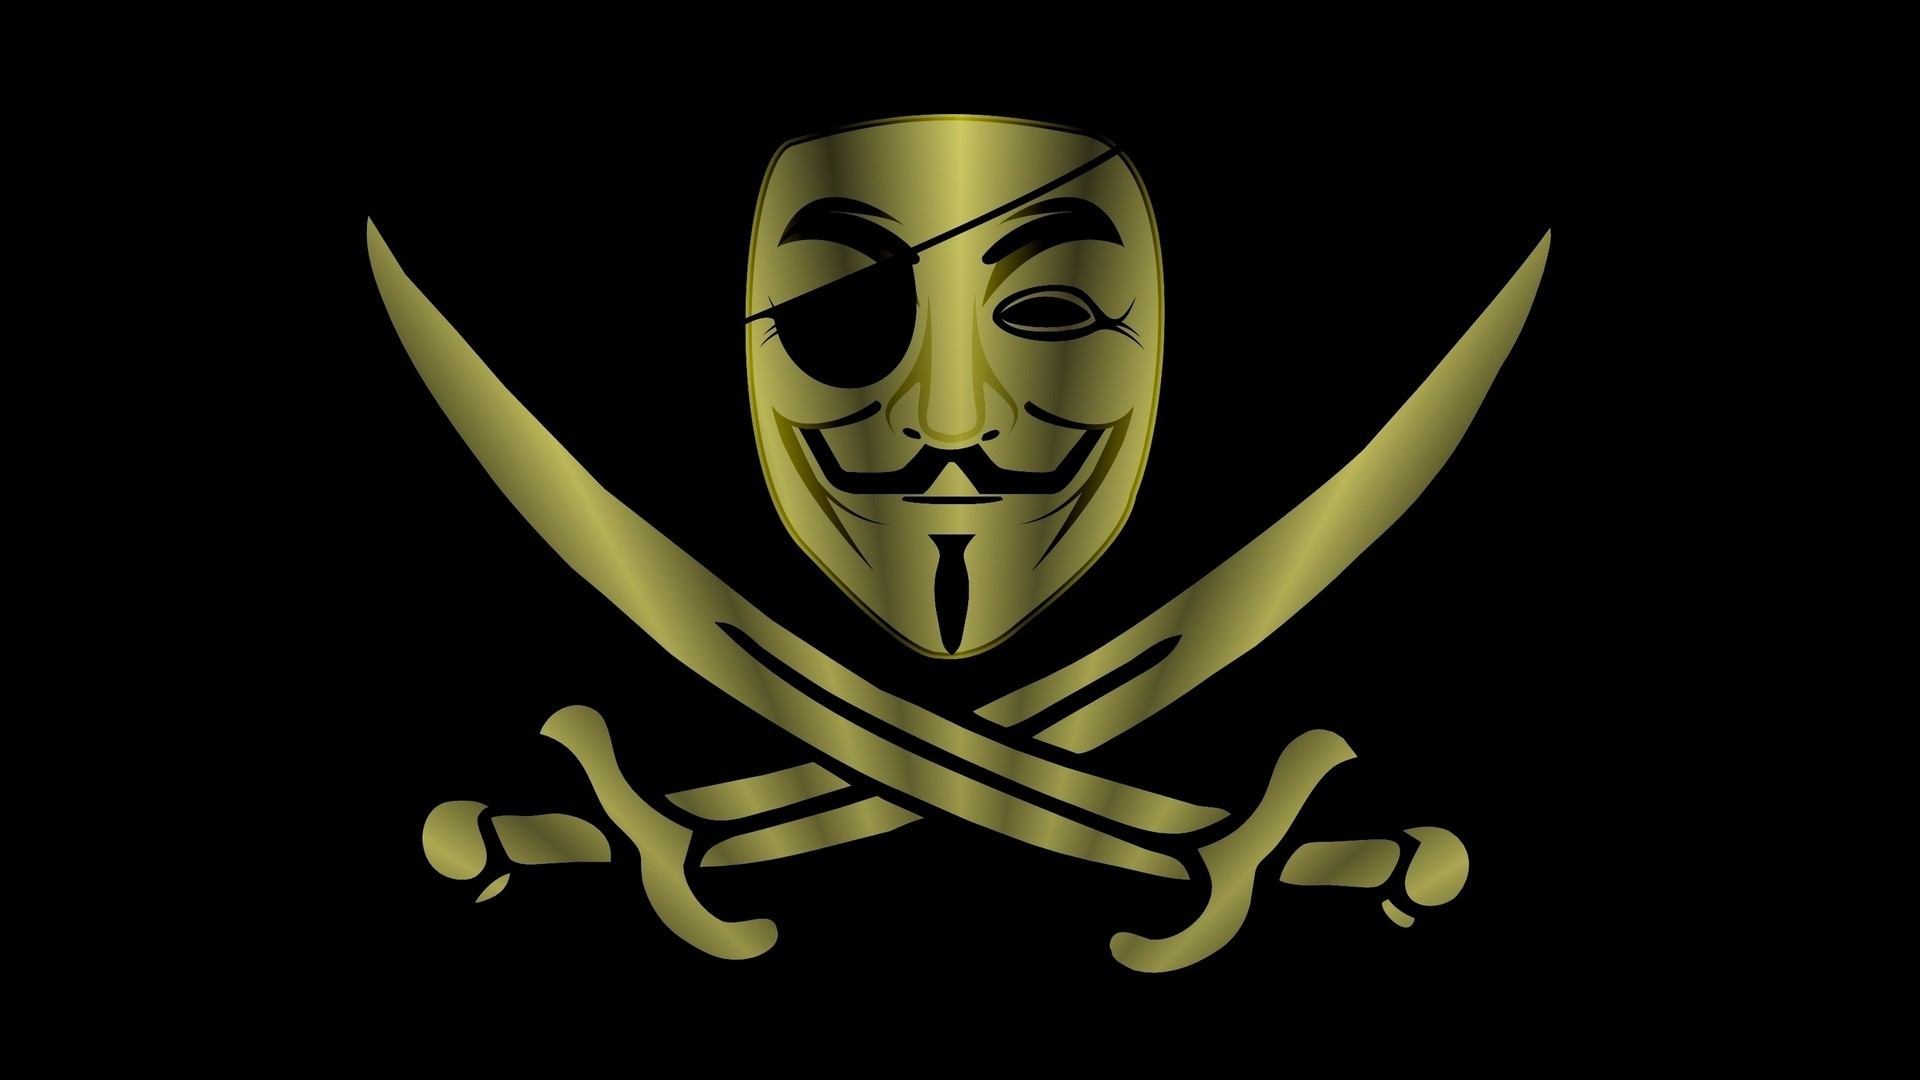 1920x1080 Anonymous on pirate flag